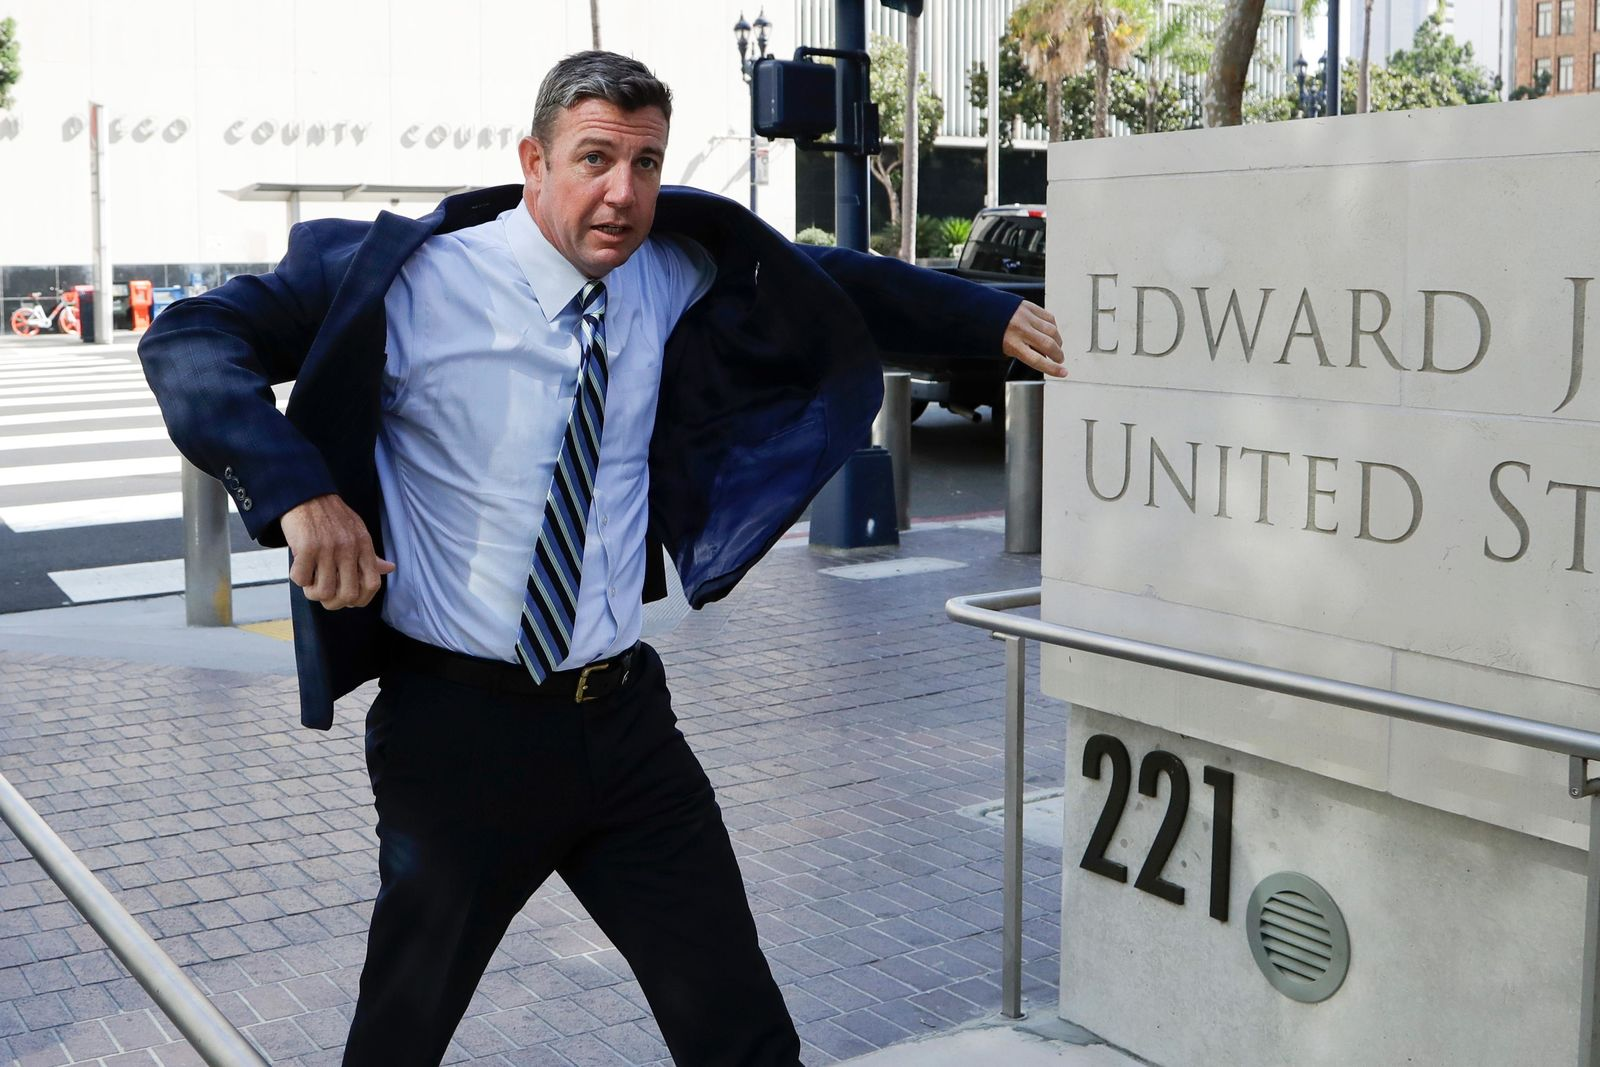 U.S. Rep. Duncan Hunter pulls on his coat as he arrives for an arraignment hearing Thursday, Aug. 23, 2018, in San Diego. Hunter and his wife were indicted on federal charges that they used more than $250,000 in campaign funds for personal expenses that ranged from groceries to golf trips and lied about it in federal filings, prosecutors said. (AP Photo/Gregory Bull)